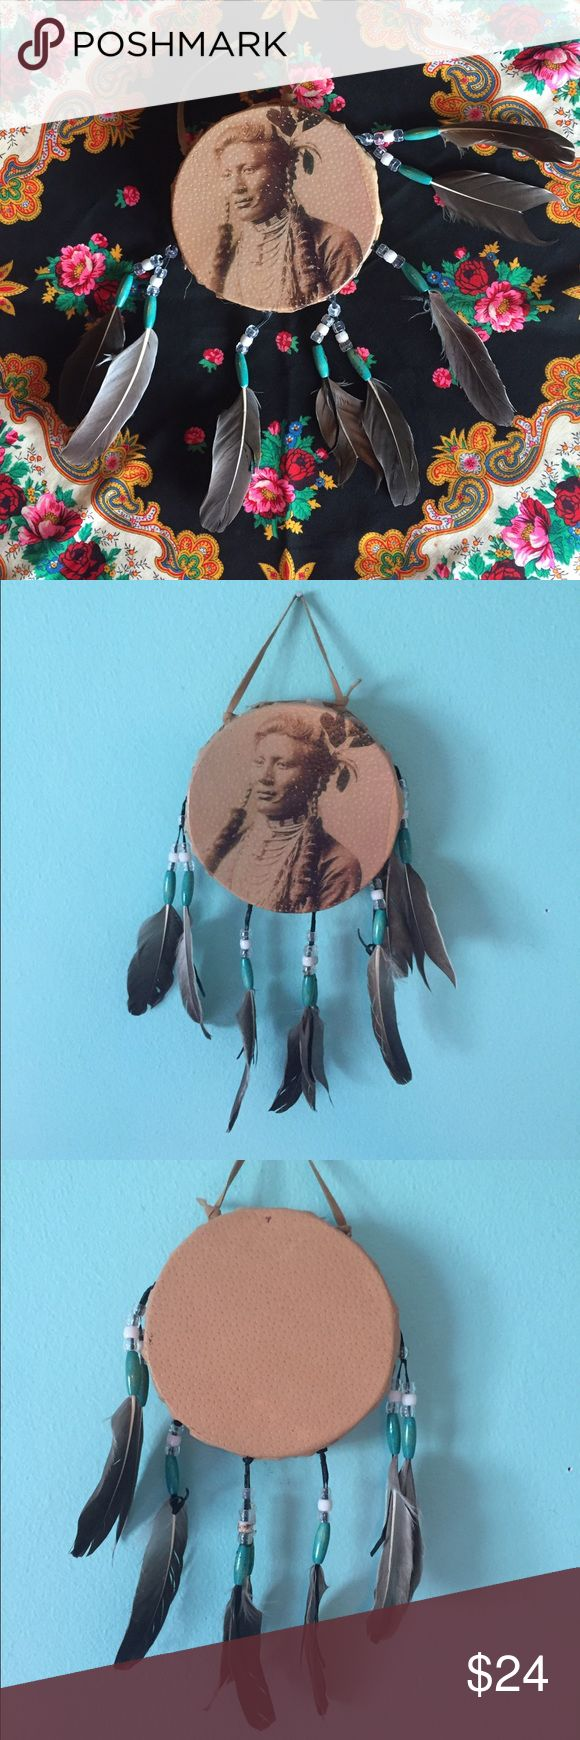 Native American decorative drum southwestern BoHo Really rustic looking vintage style Native American picture on faux leather. Drum is decorative and looks to be made of a light wood. Wooden turquoise colored beads and plastic pony beads with feathers. Entire thing measures approximately 13 inches long including feathers. Perfect to give your room that BoHo vibe! Vintage Accessories